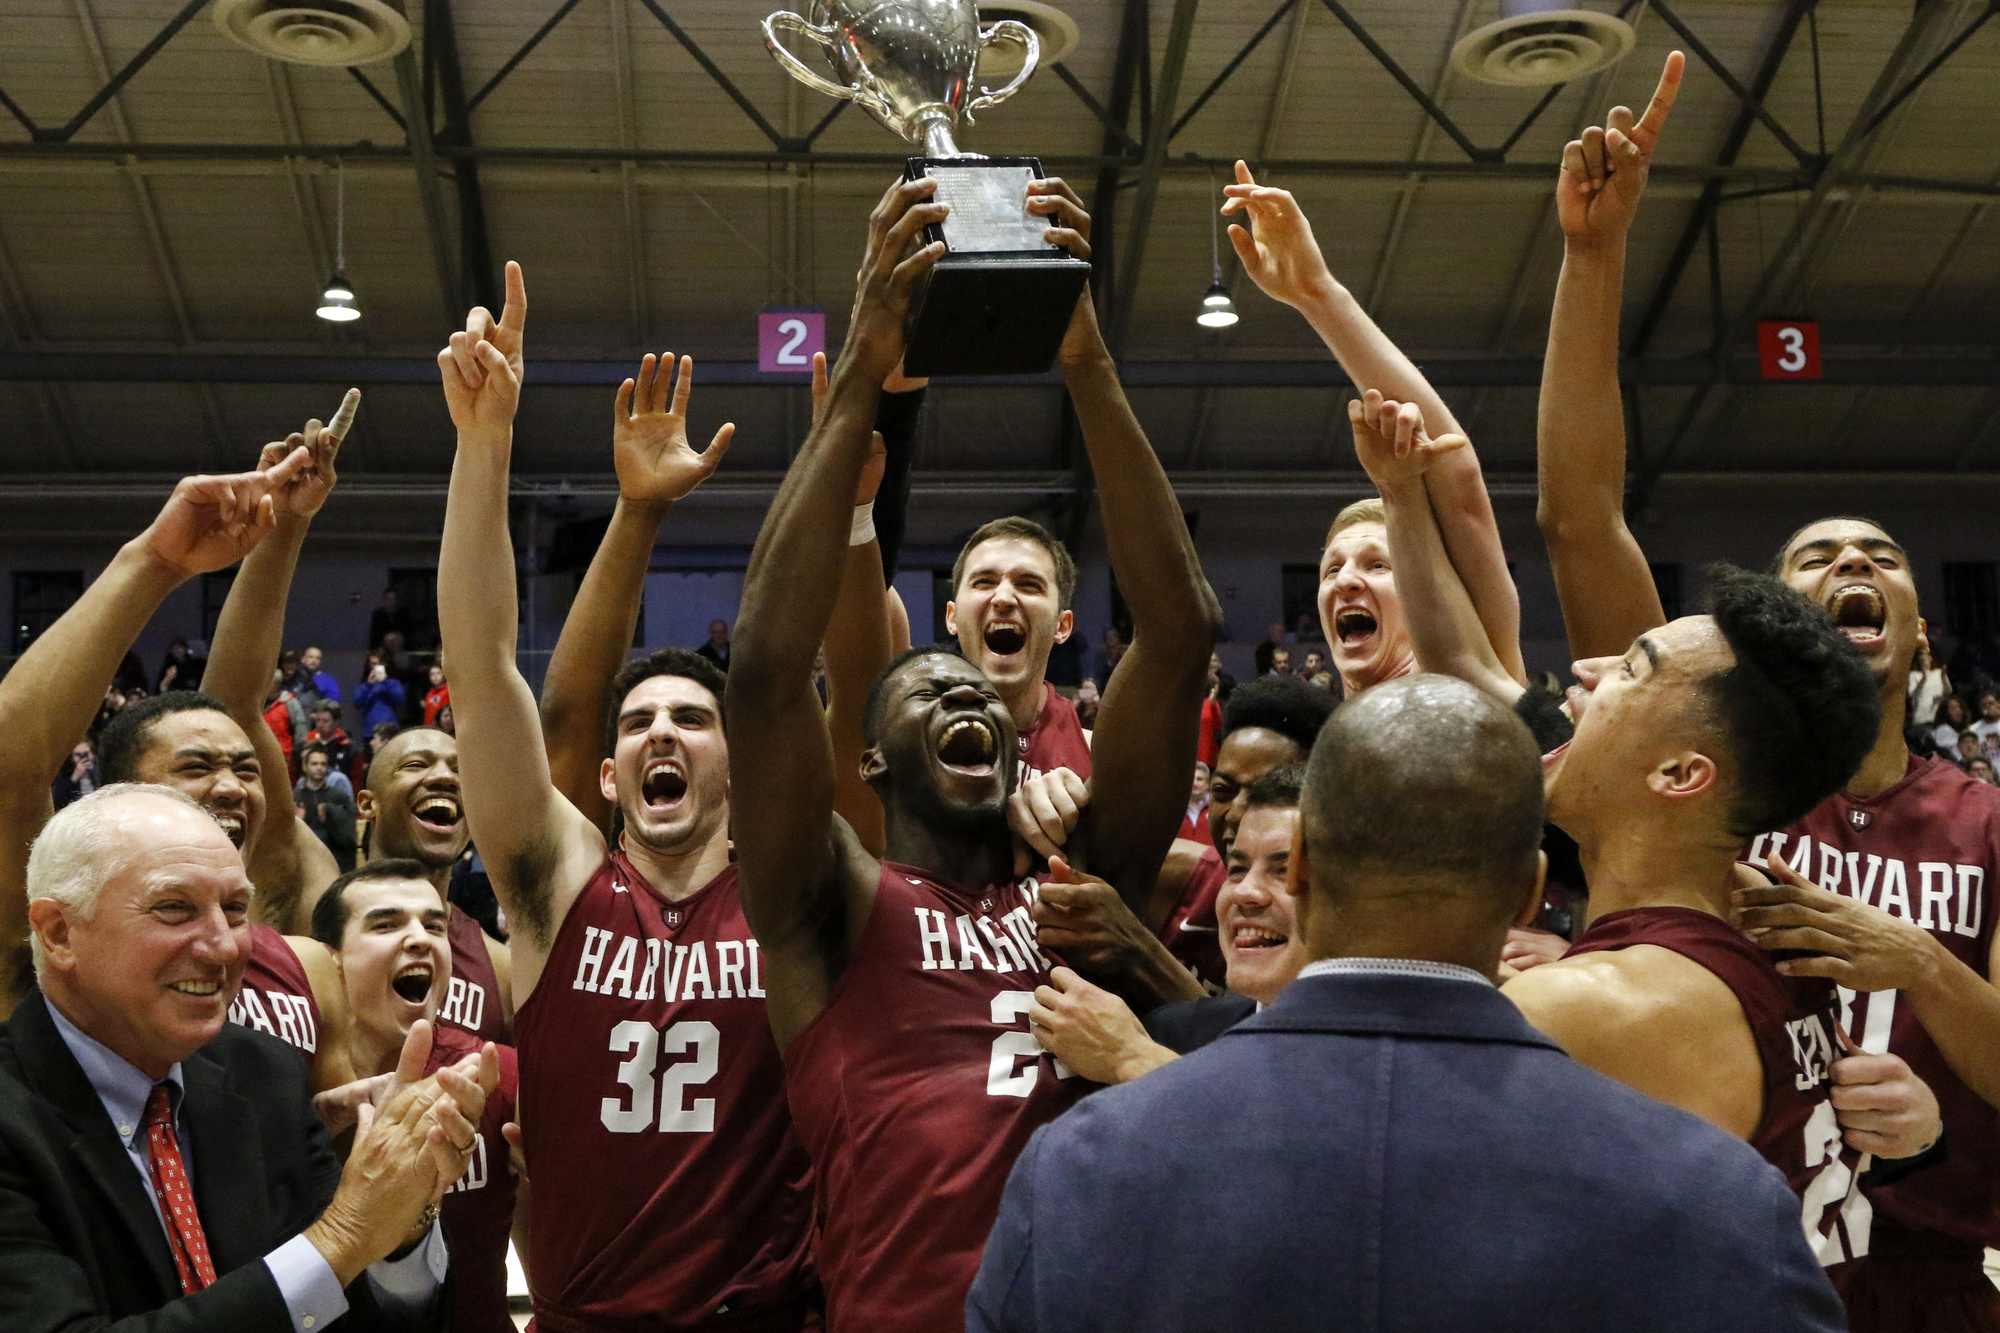 Coach Amaker looks ahead at his team after clinching a share of the Ivy League title this March. Lead by a sophomore class ranked 10th best in the nation at the time, the Crimson finished the conference season with just two losses.